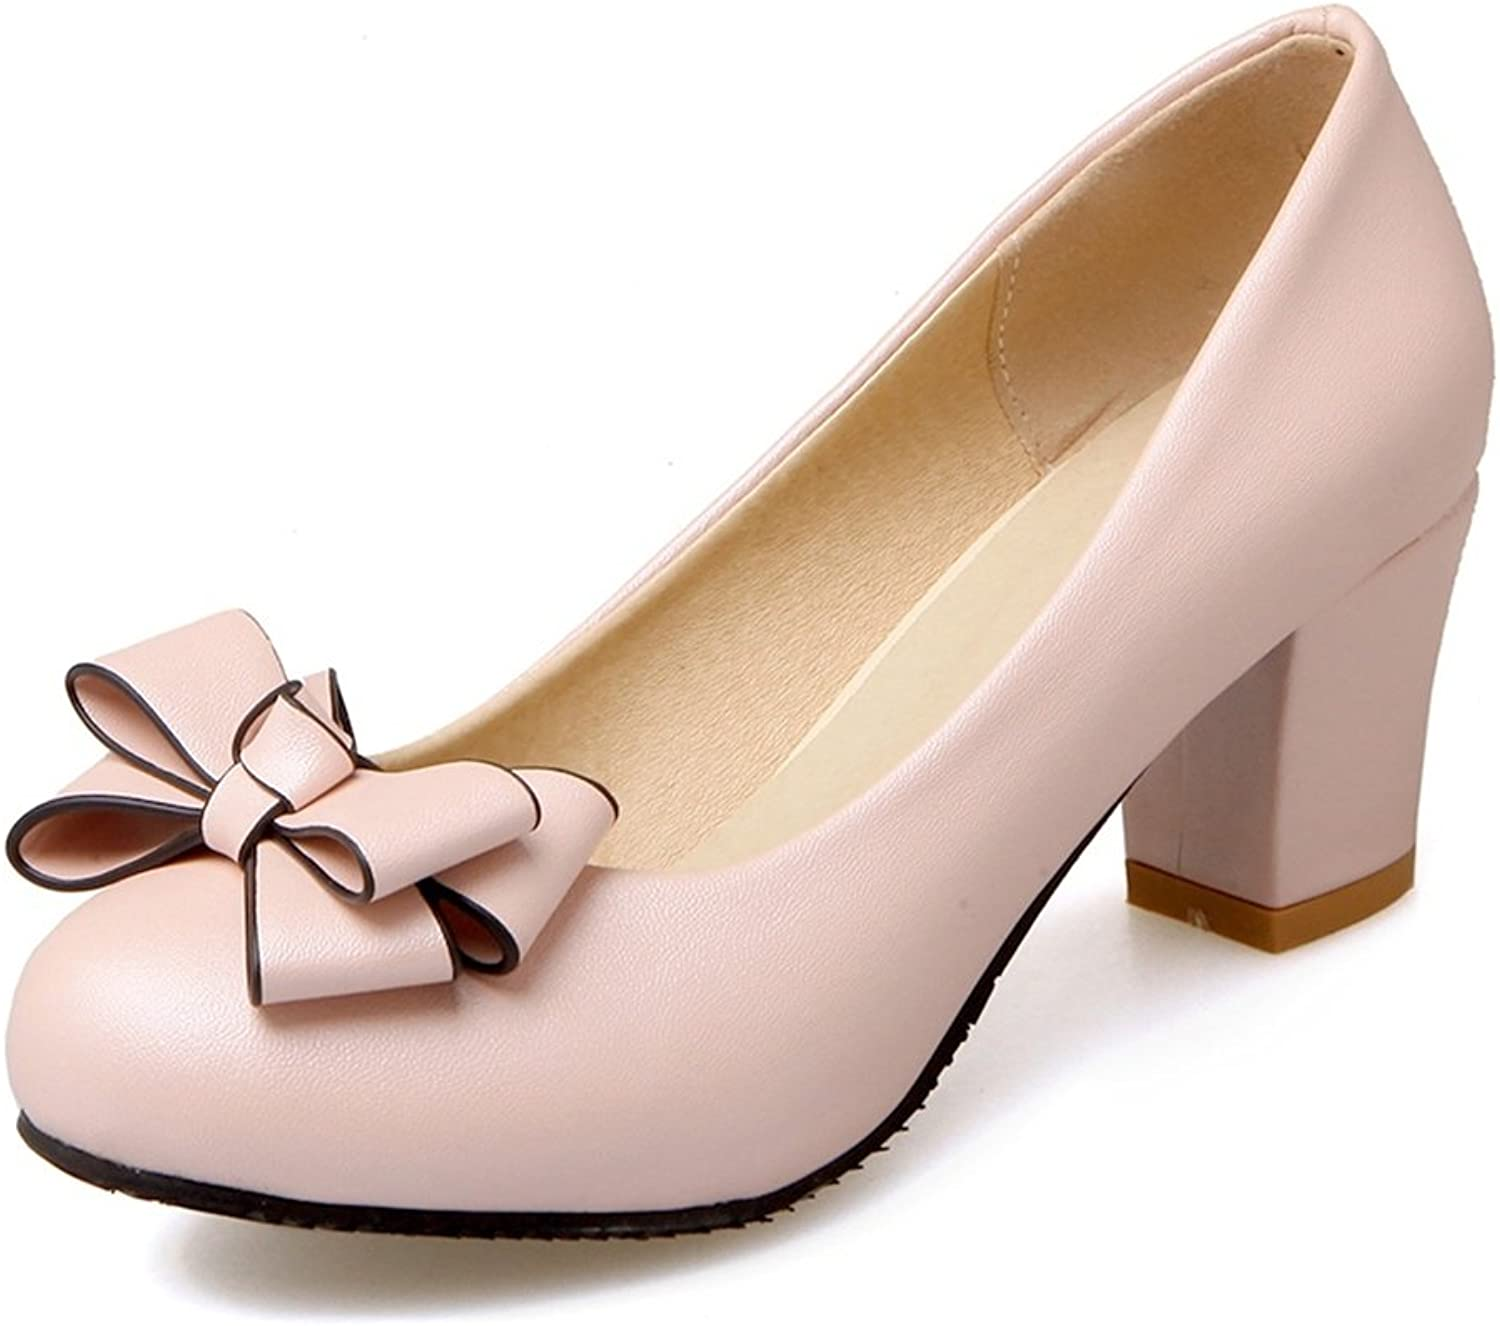 DecoStain Women's Cute Round Toe Bowtie Decoration Slip-on High Chunky Heels Working School Pumps shoes